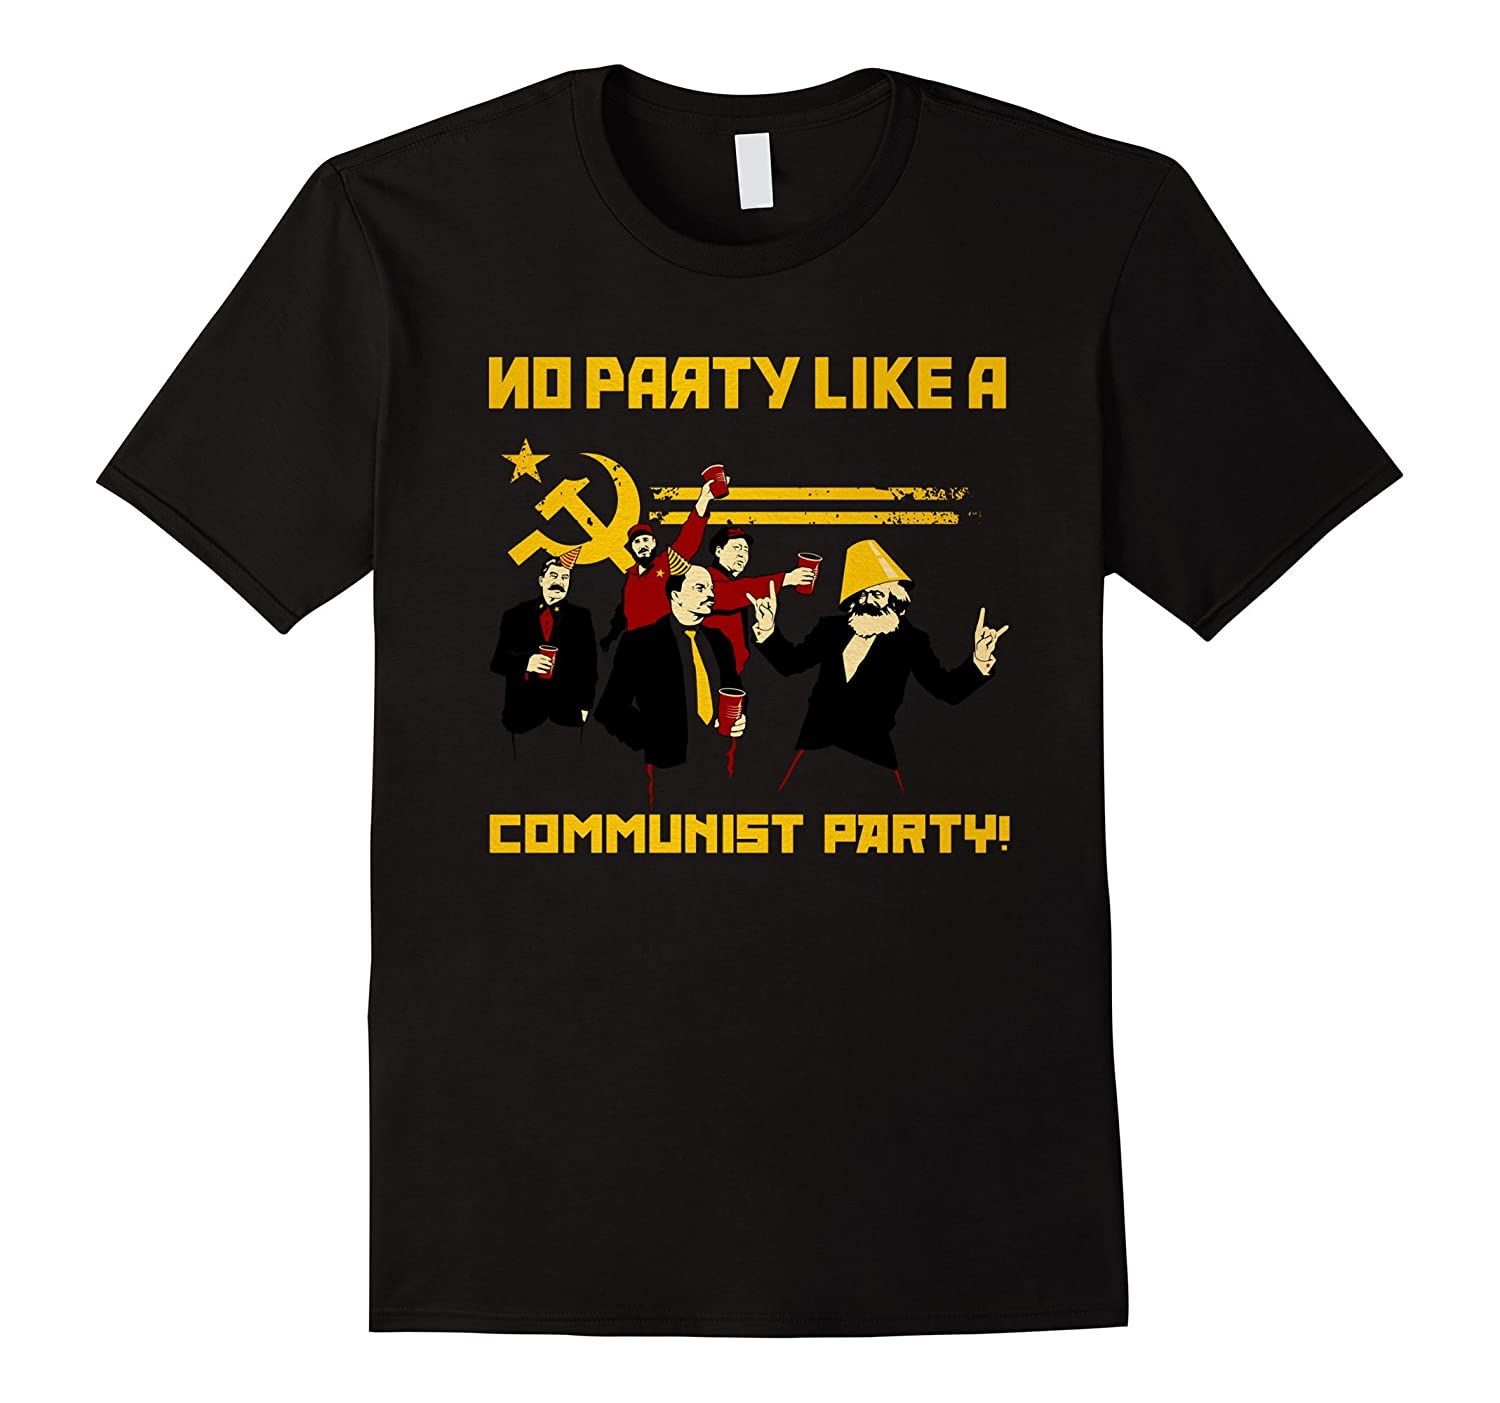 bc98d1af No Party Like A Communist Party - Funny Communist T-Shirt-TH - TEEHELEN